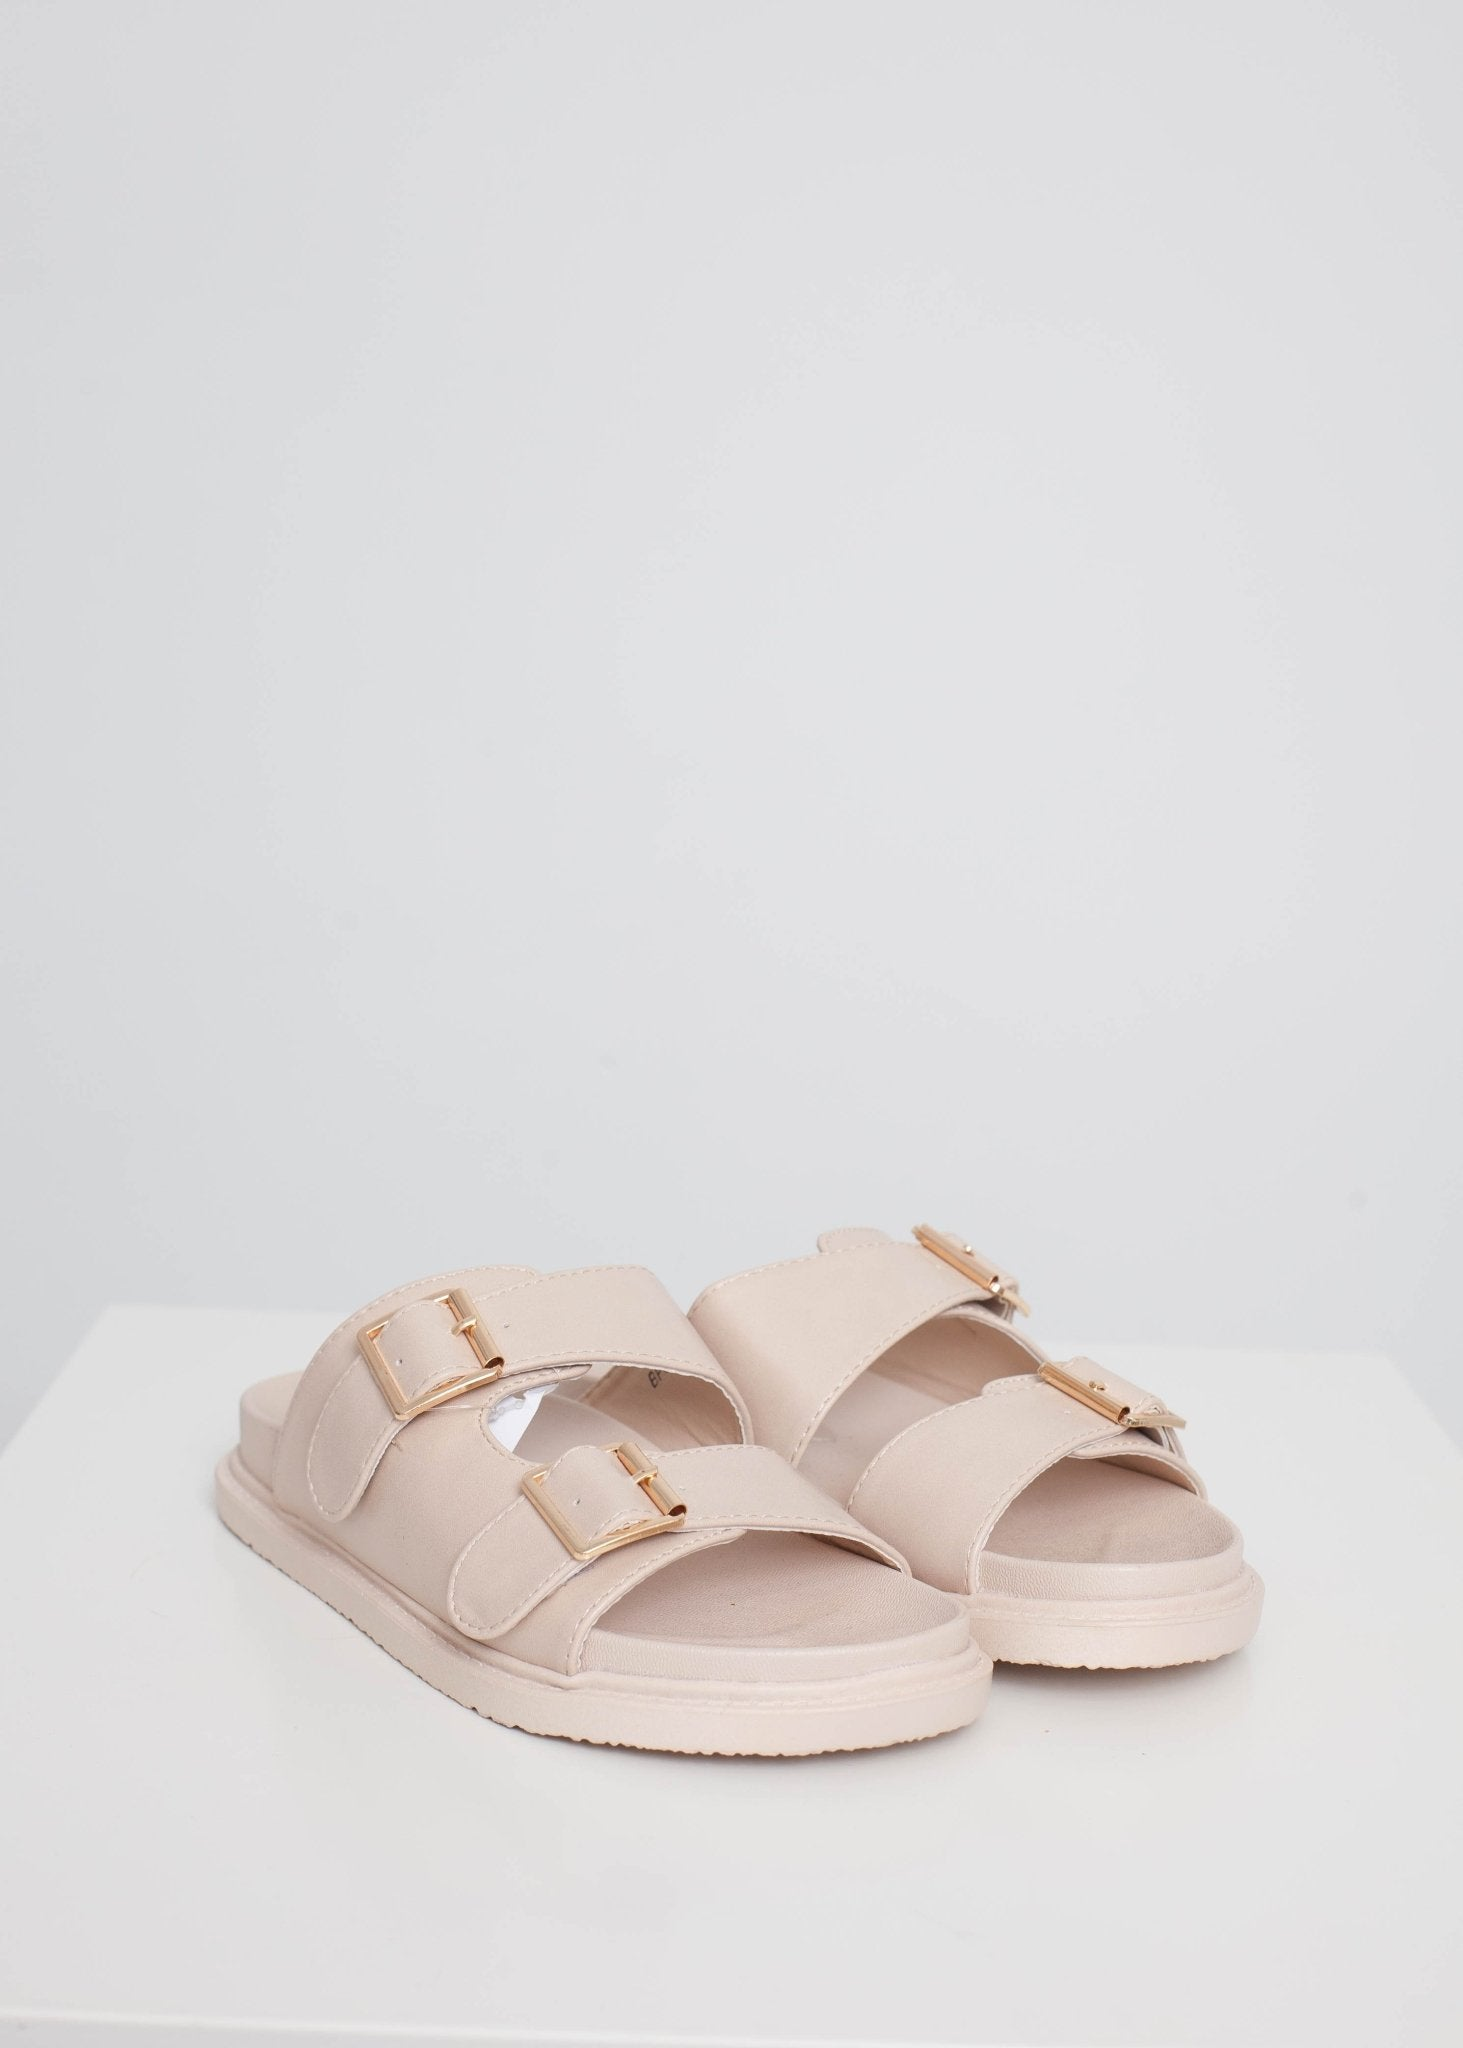 Priya Flat Sandals In Beige - The Walk in Wardrobe